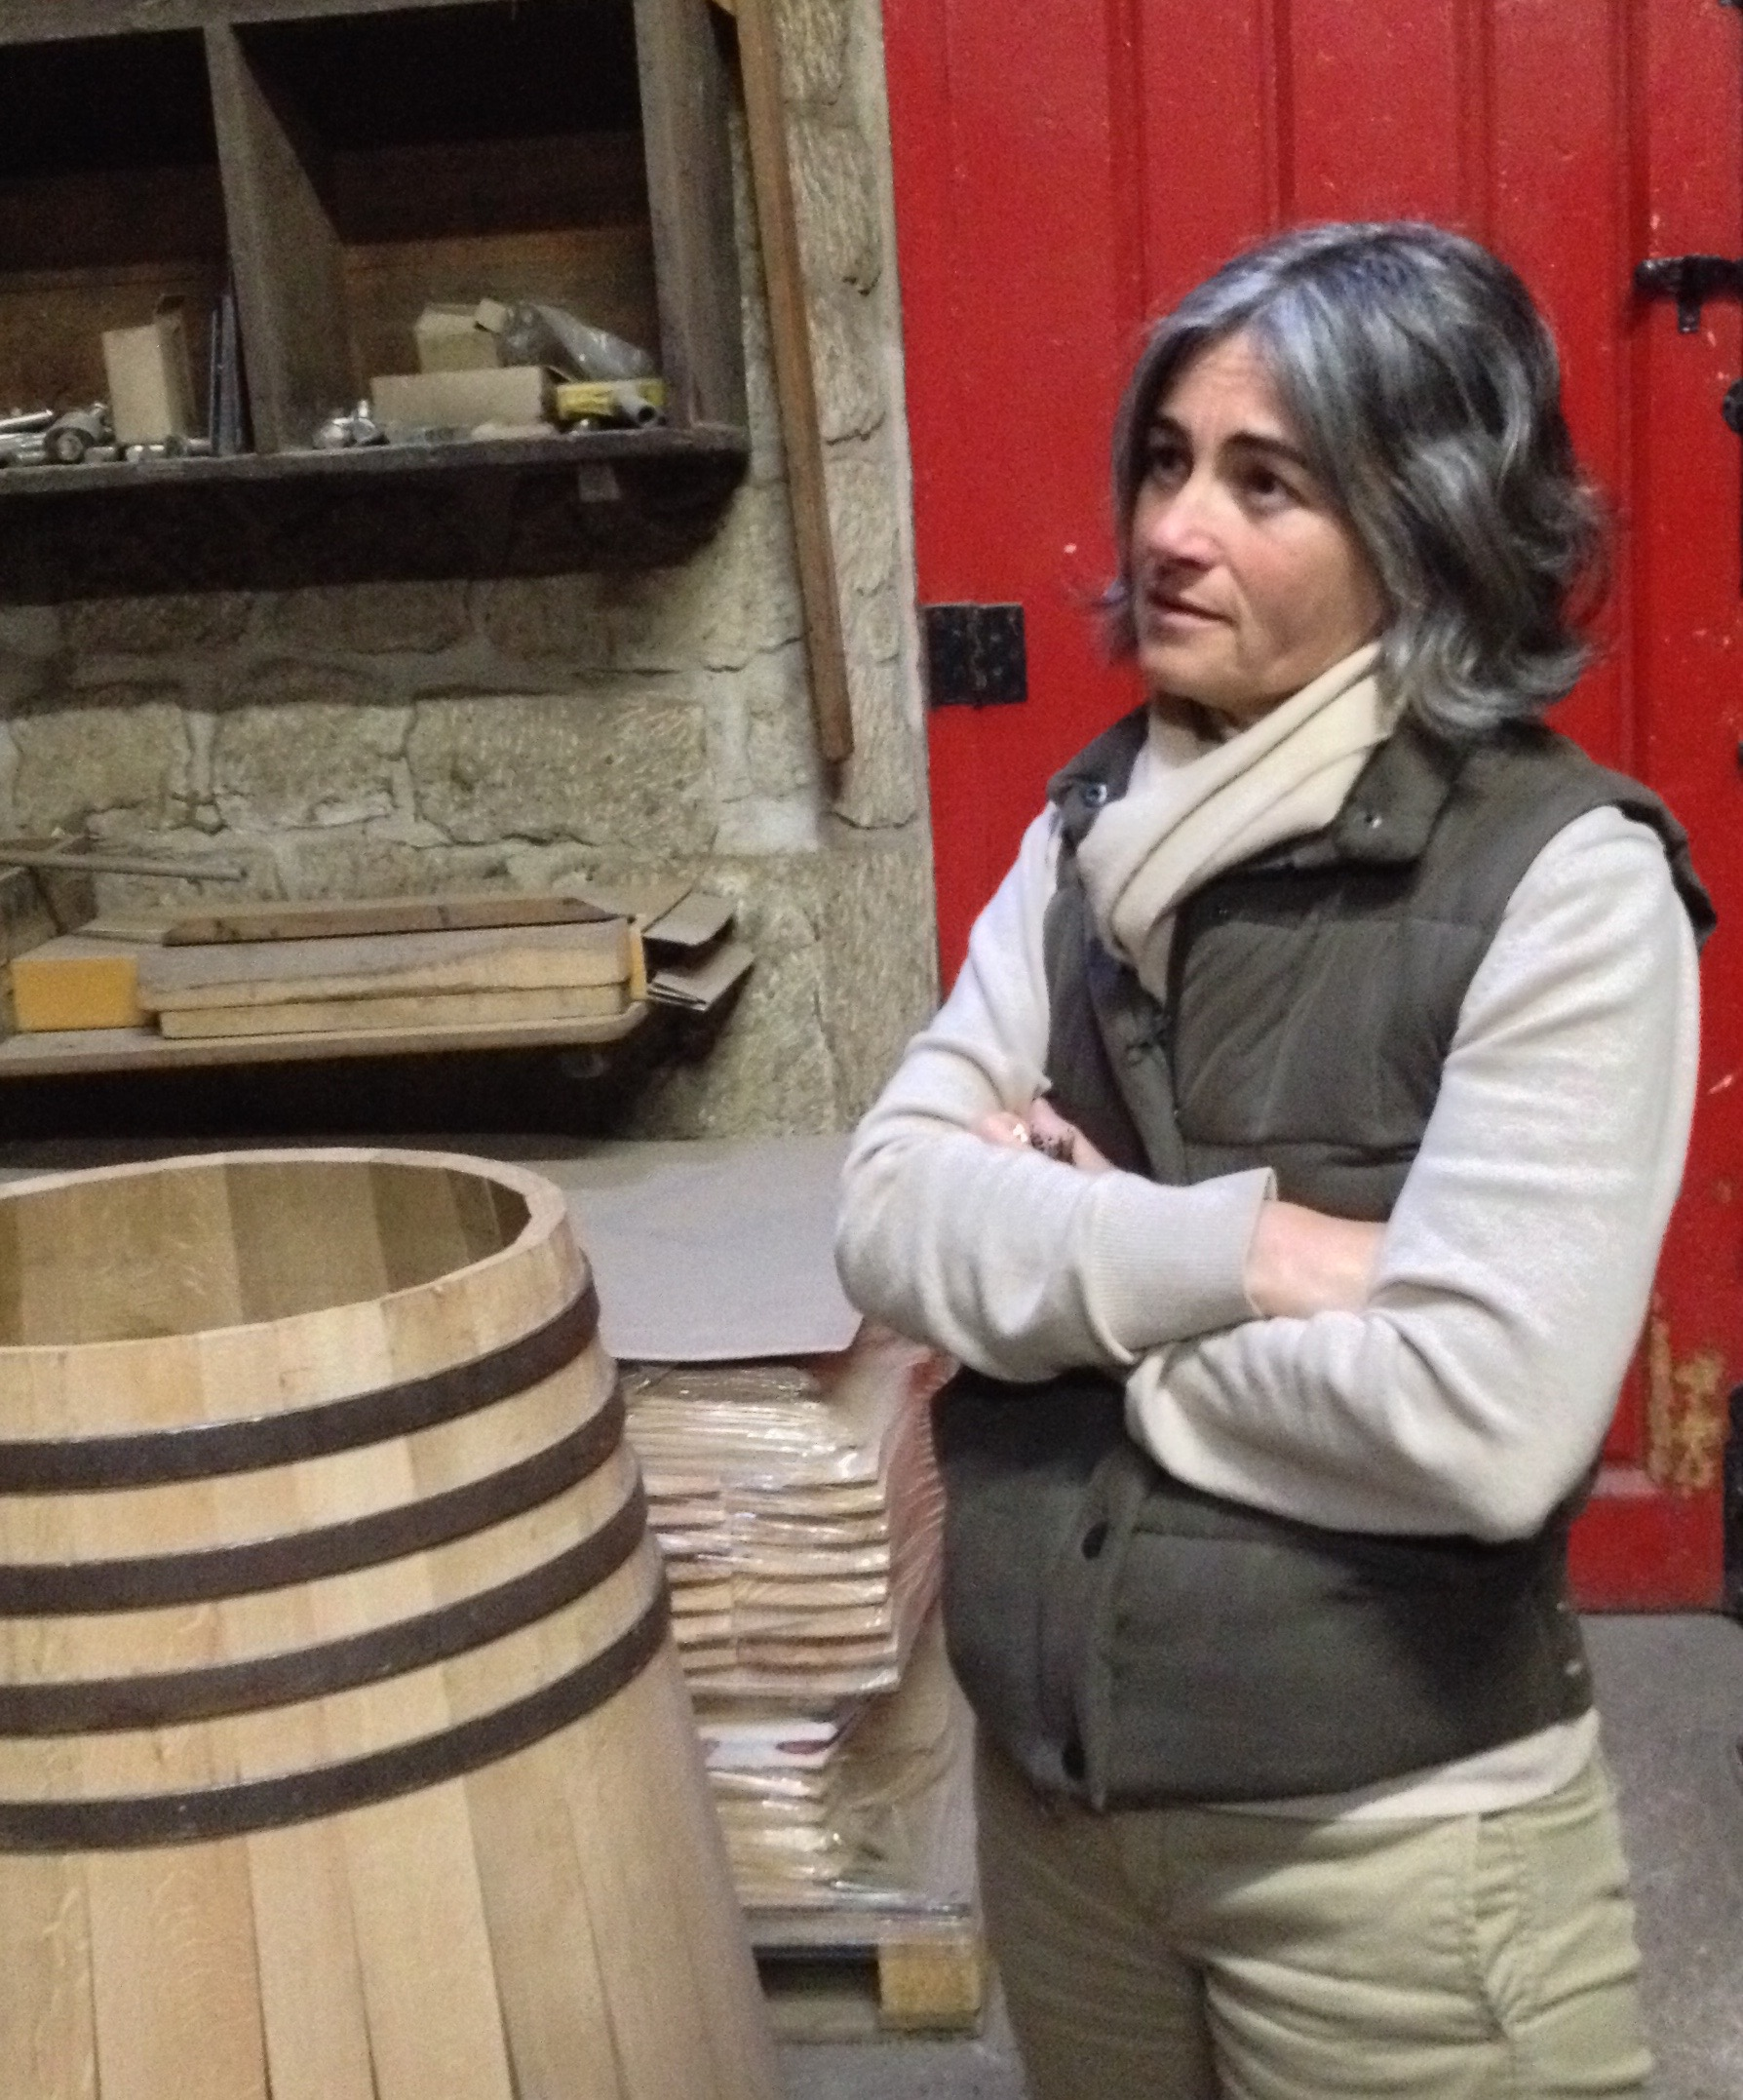 Maria Jose shows how Lopez Heredia makes its own barrels